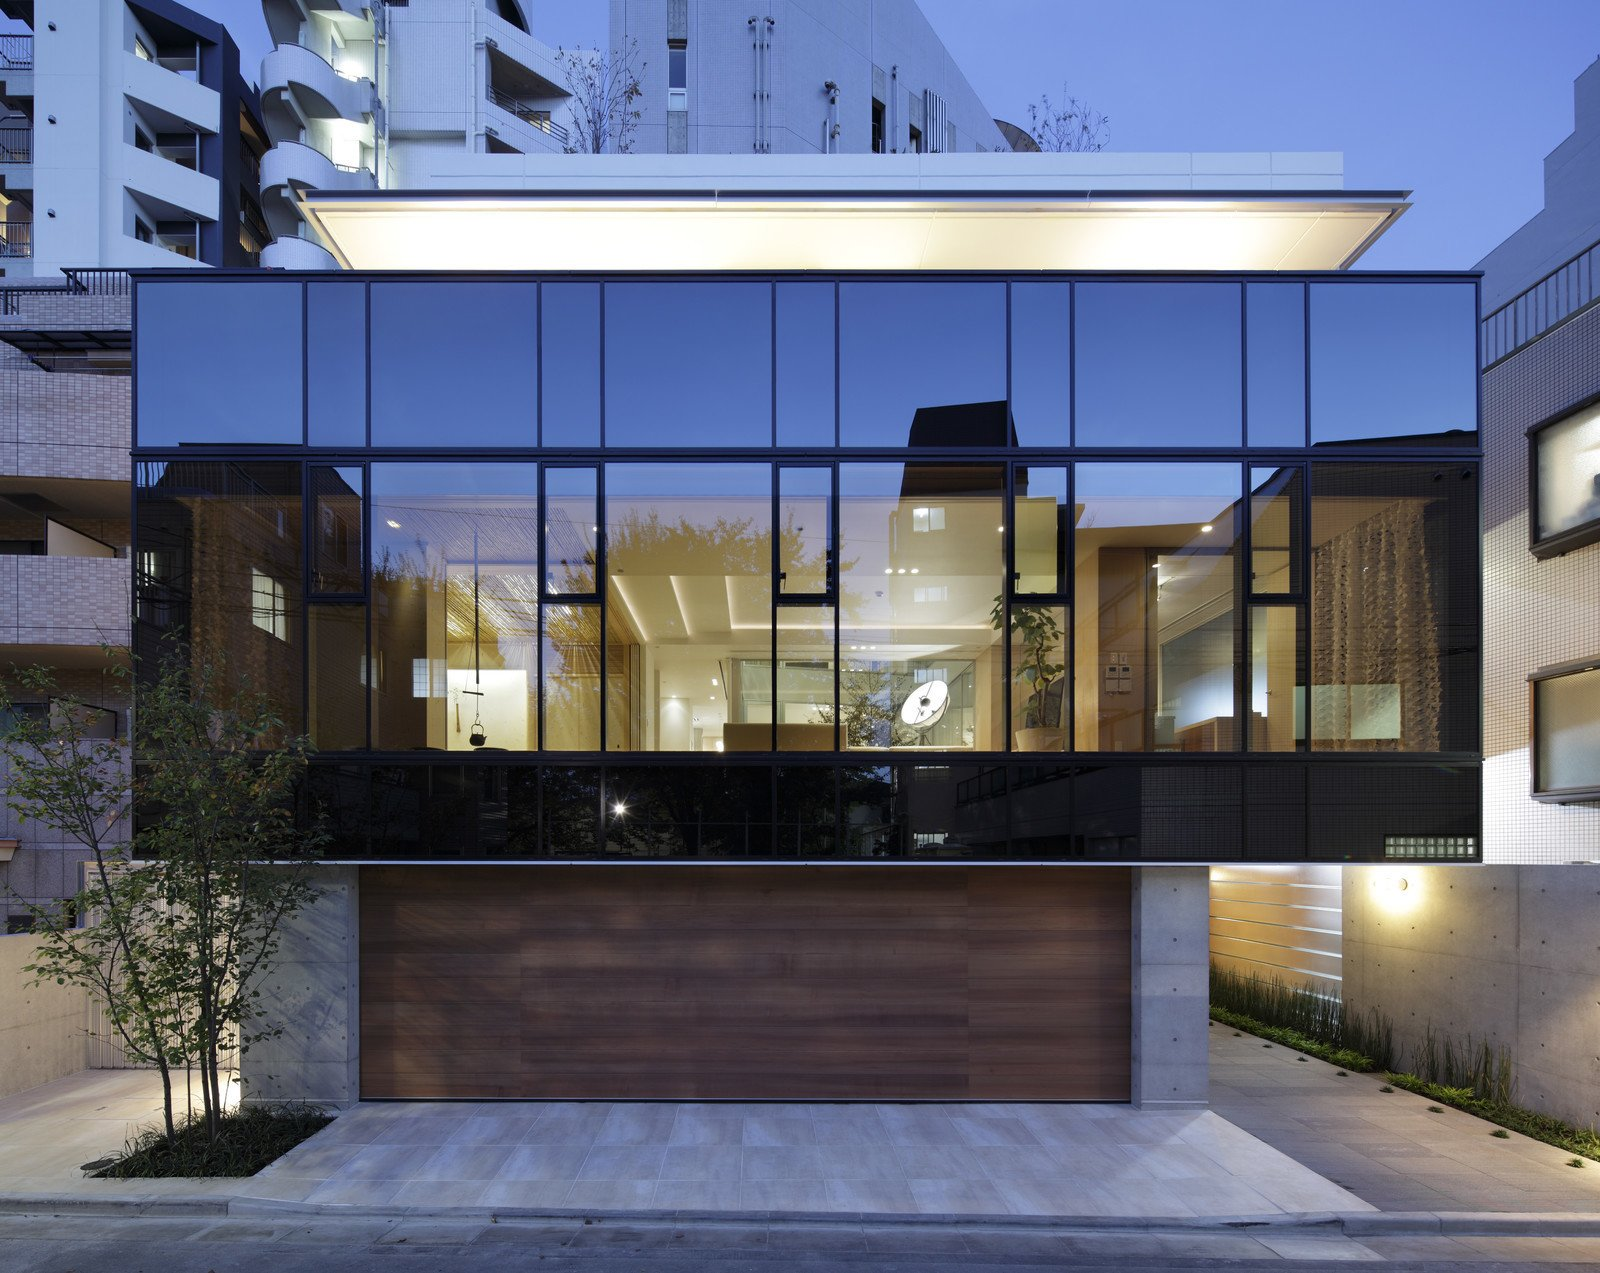 Glass is the star feature of this modernist home in Japan. Glass Takes Center Stage in These 10 See-Through Homes - Photo 10 of 11